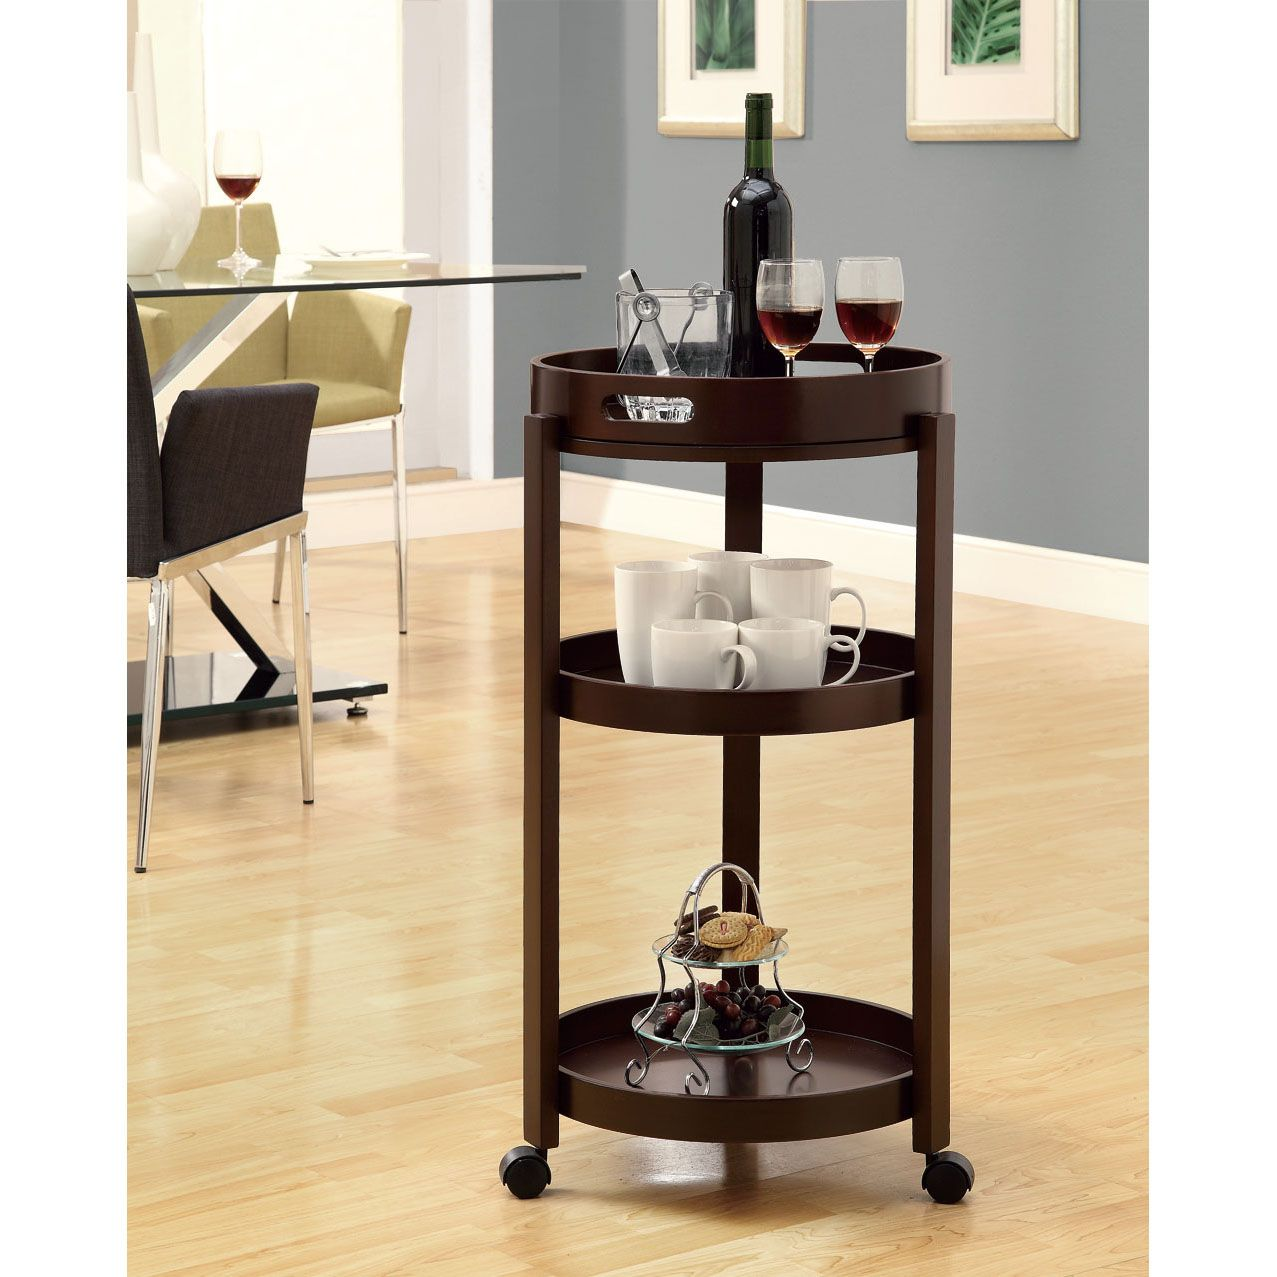 Beautiful Monarch Specialties Bar Cart With A Serving Tray On Castors, Cappuccino